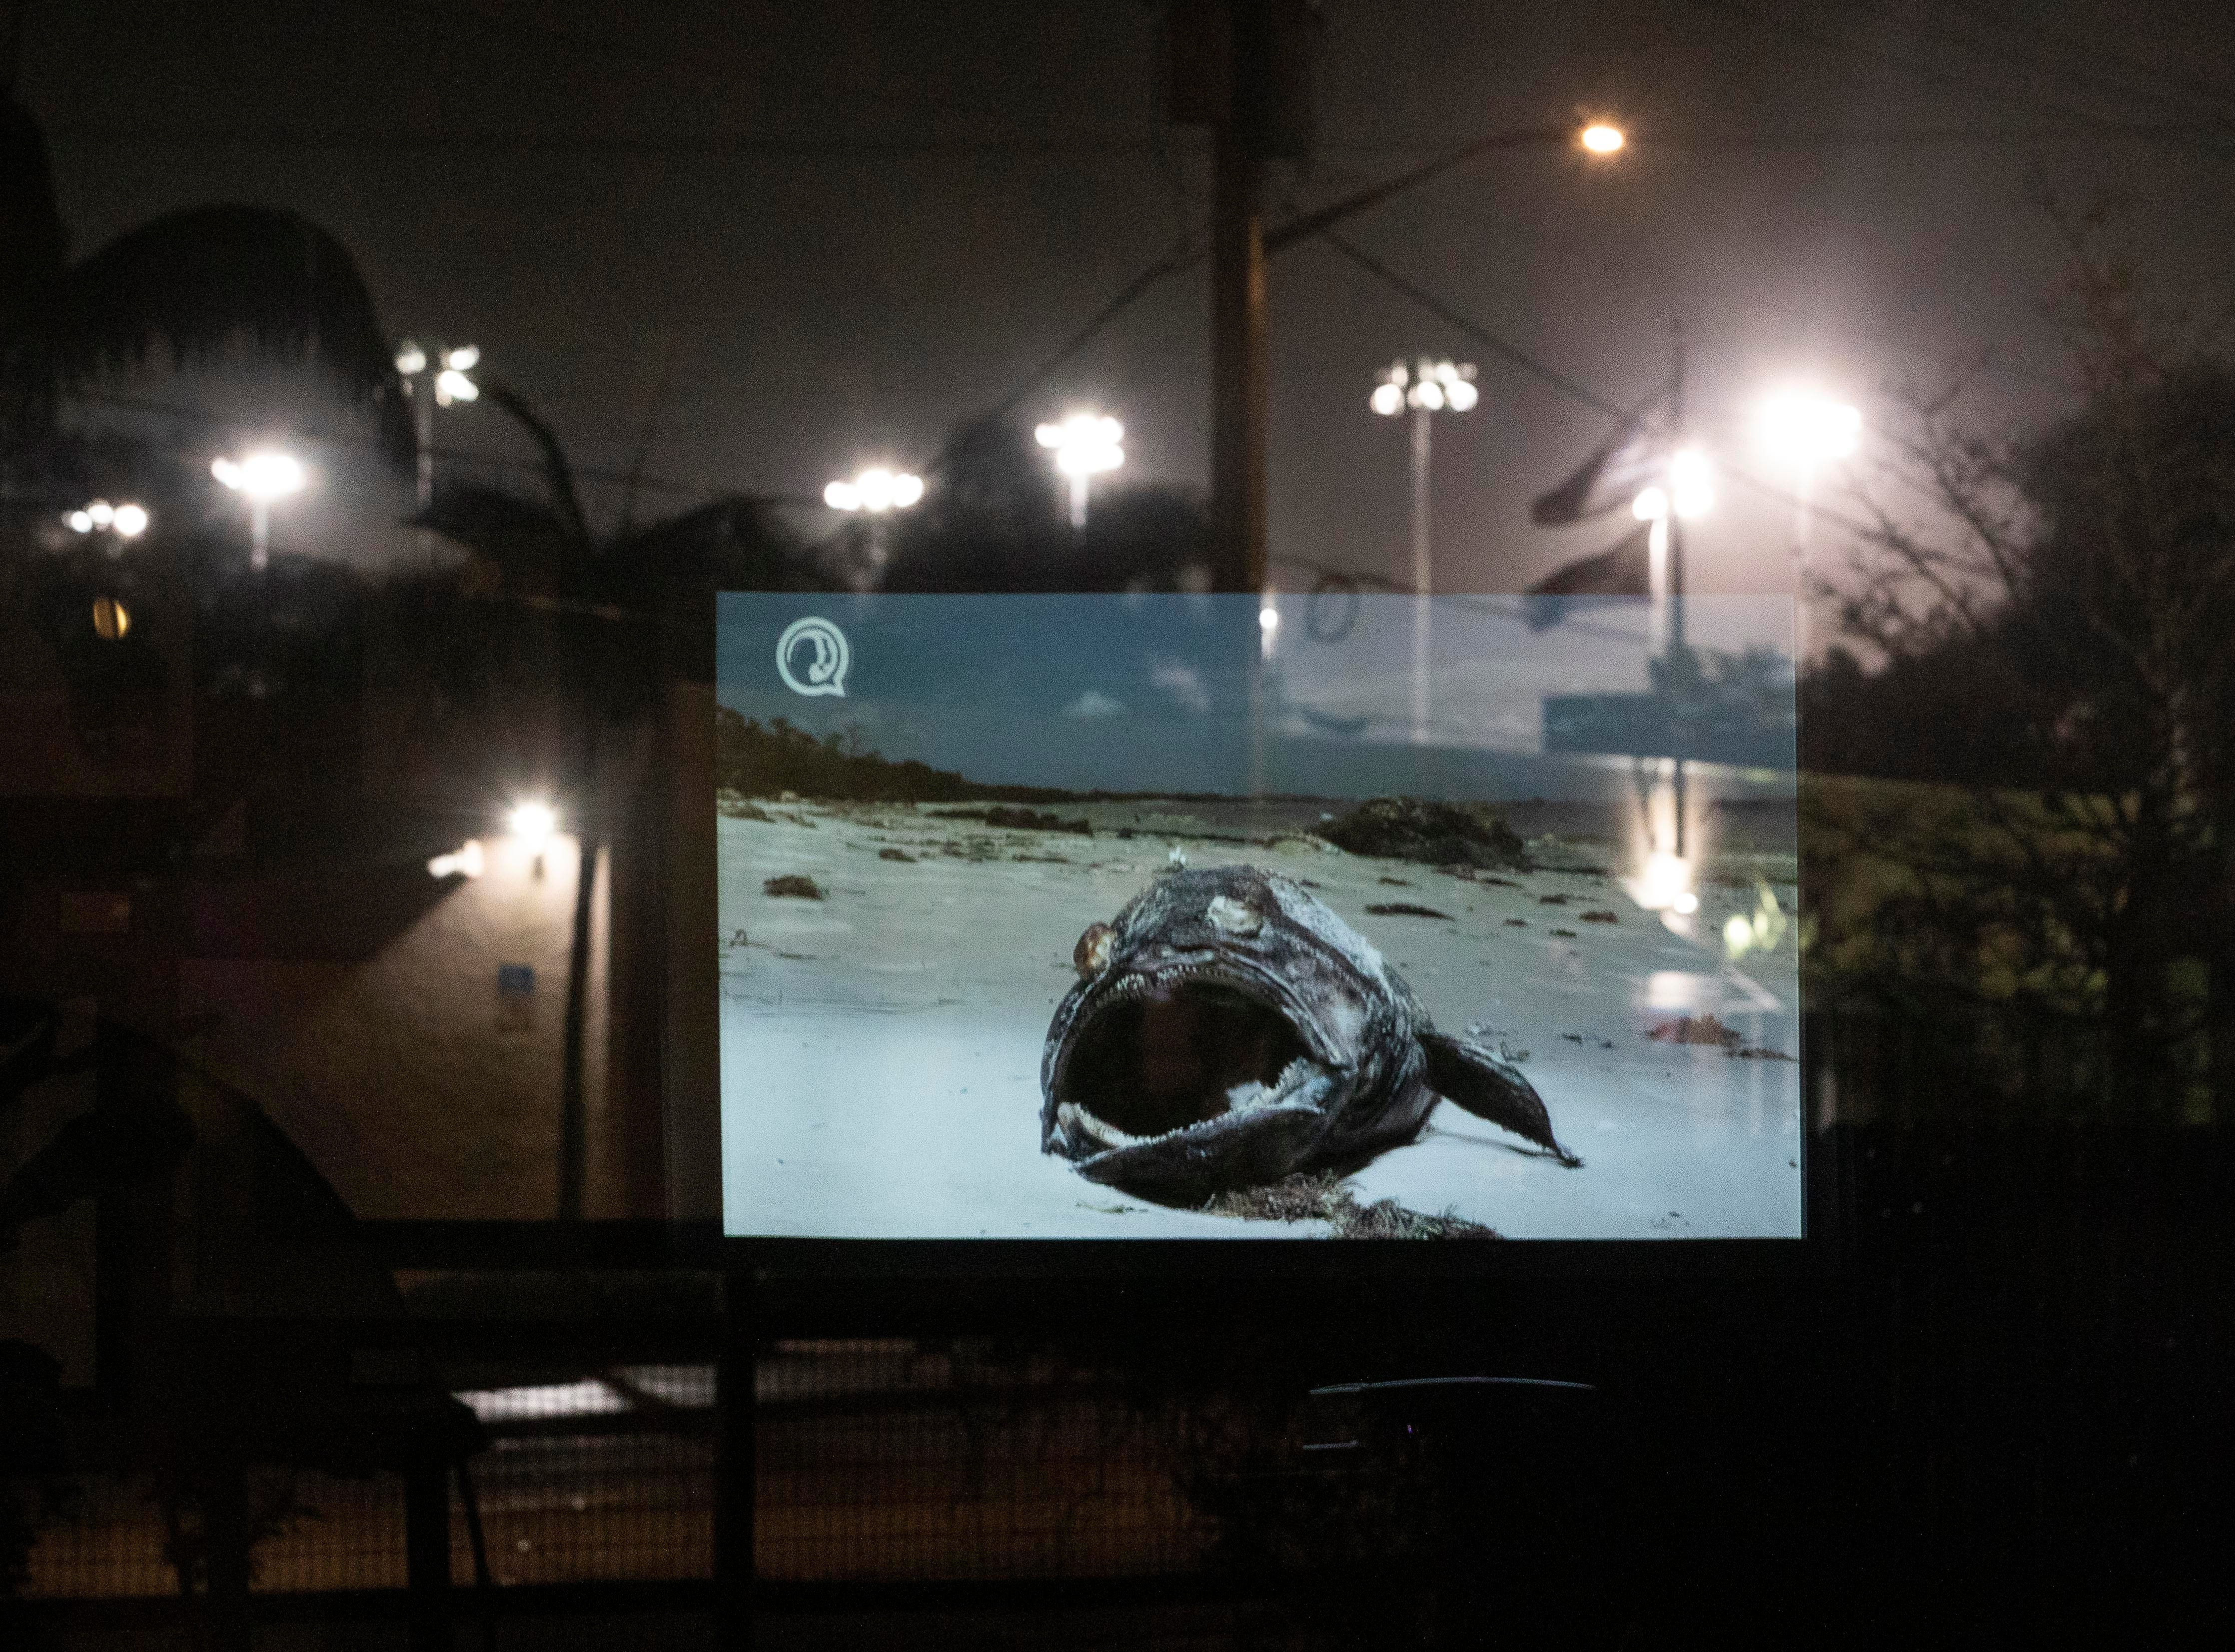 """A scene from the 24-minute film, """"A State in Transition,"""" is reflected in a window at Ground Floor Farm during TCPalm's inaugural Documentary & Drinks event on Tuesday, Feb. 12, 2019, in Stuart. The film, which grew out of TCPalm's Florida Voices project was created by visuals journalist Leah Voss and opinion/audience engagement editor Eve Samples. The pair interviewed 22 Floridians from across the state about what's important to them during this important time in Florida's history. Environmental concerns were a persistent topic."""